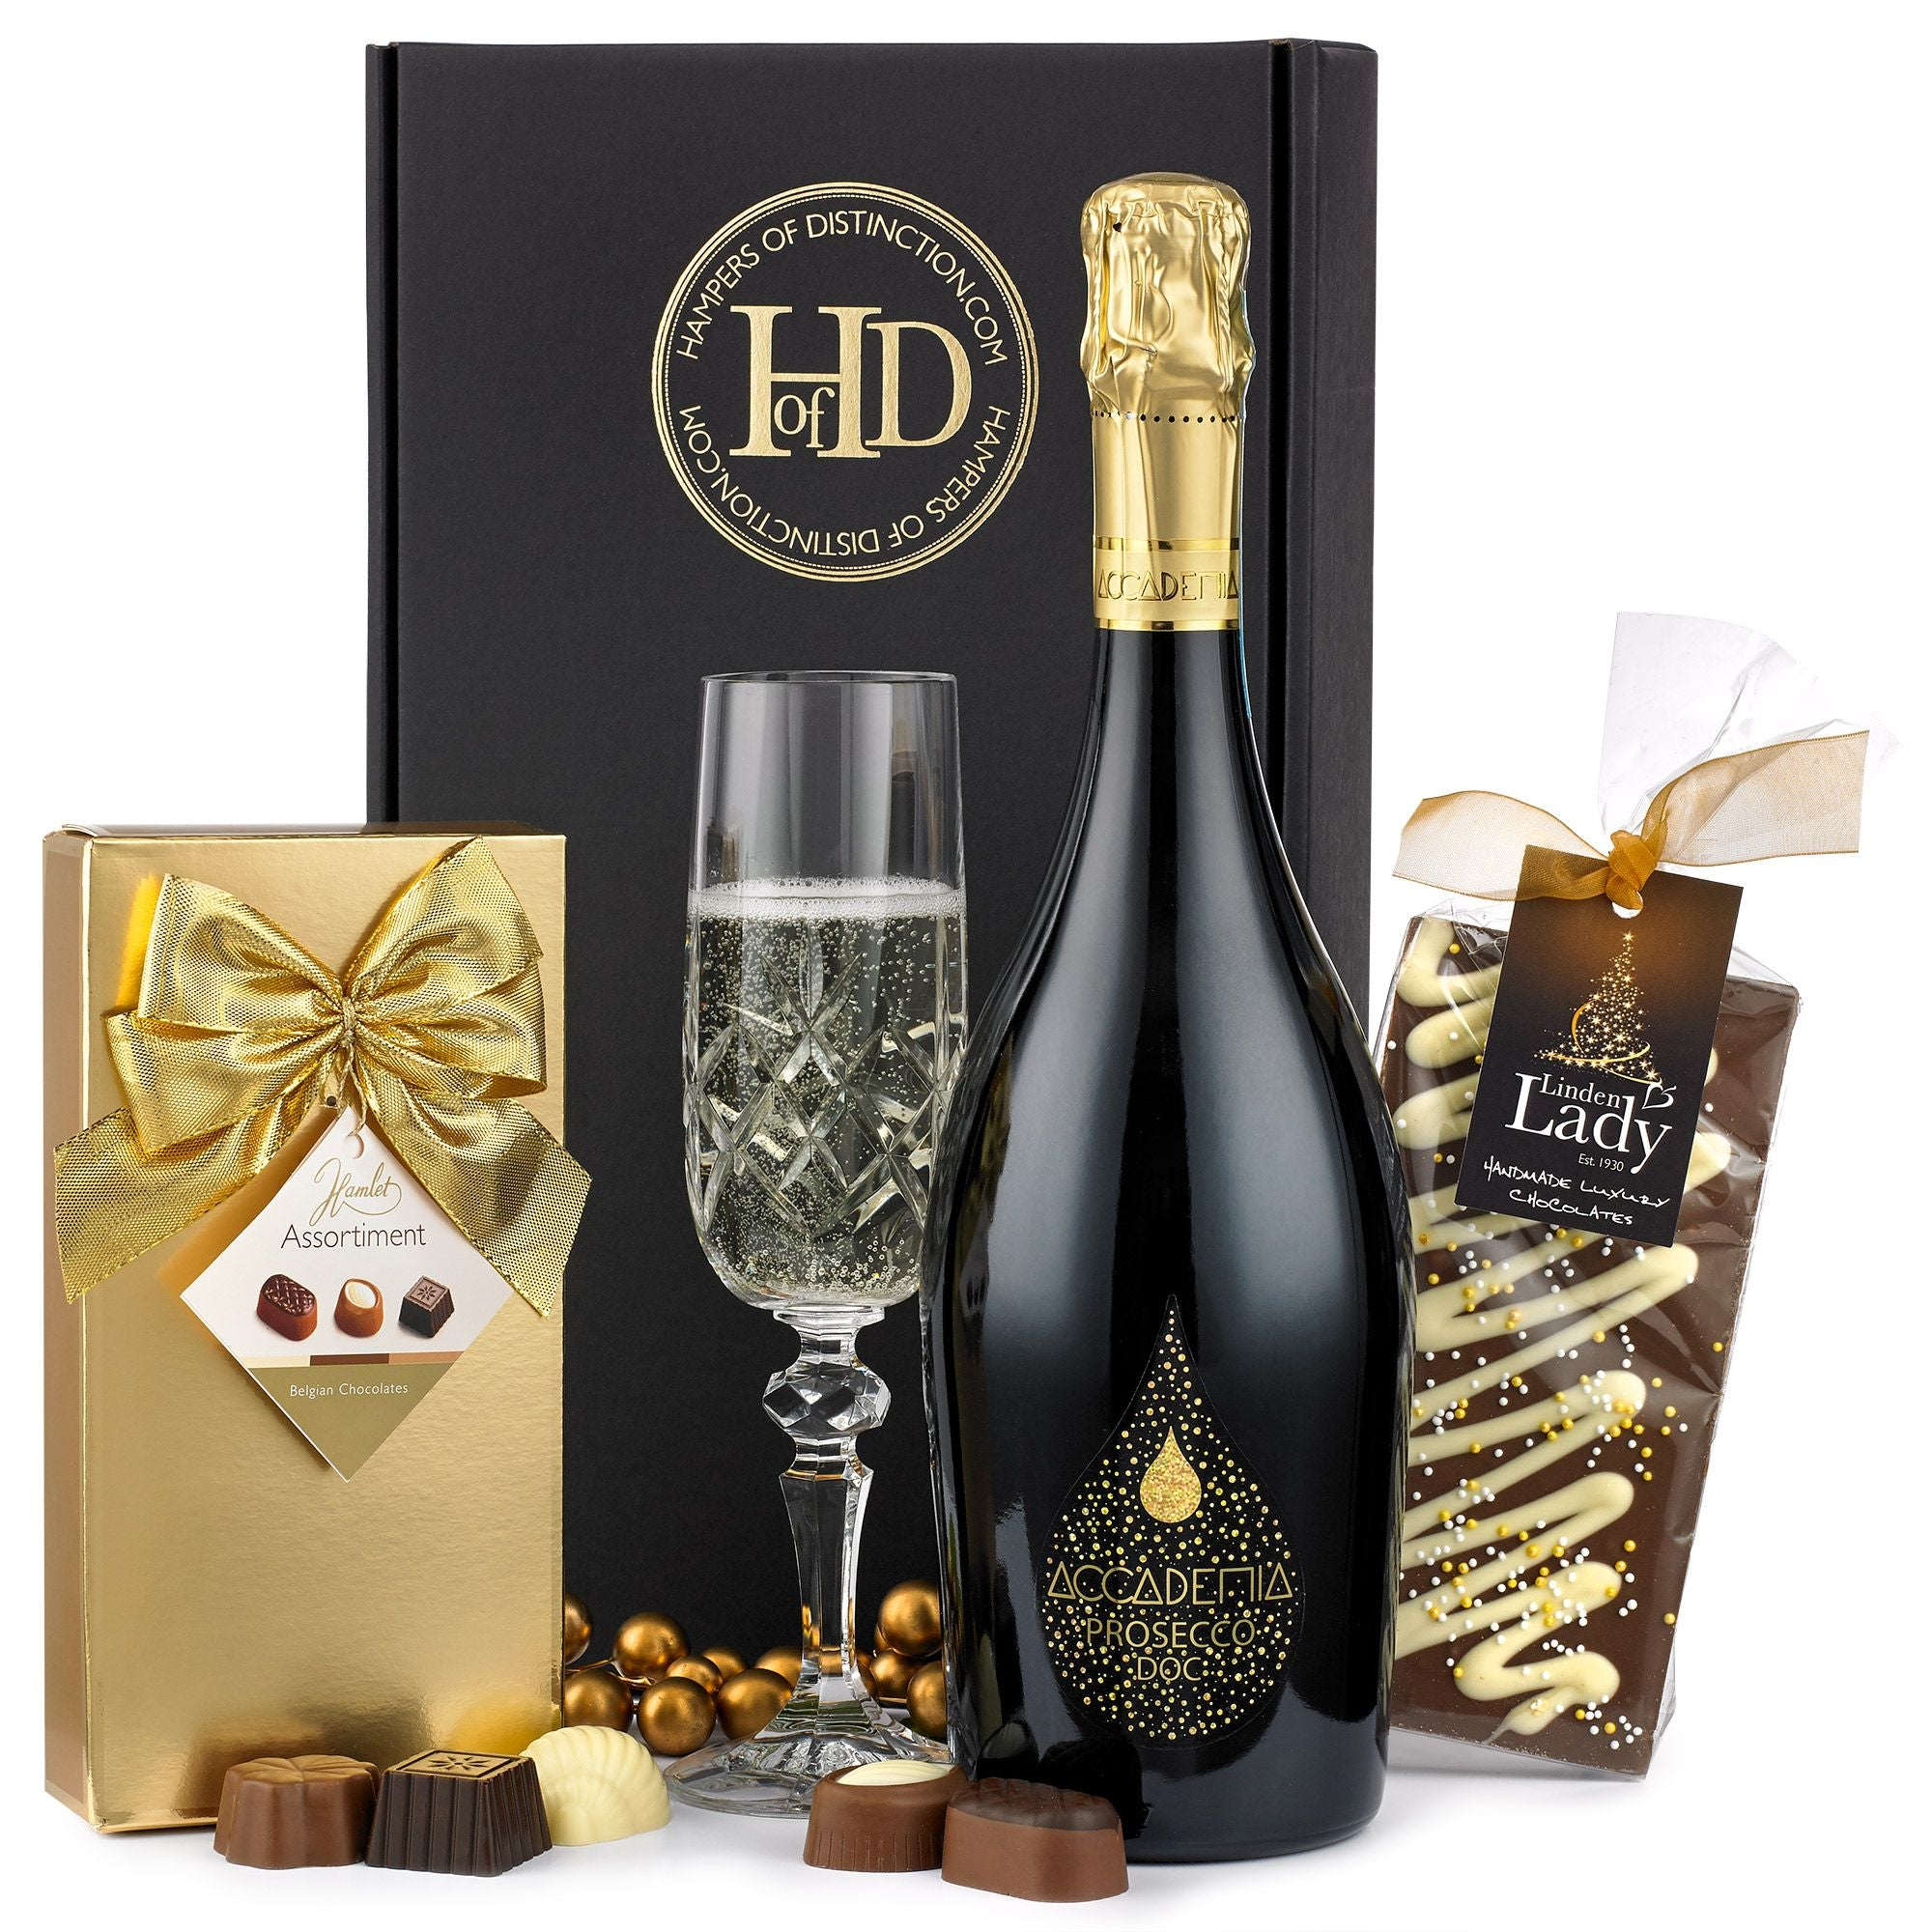 Prosecco and Chocolates by GDS - The Pop Up Deli